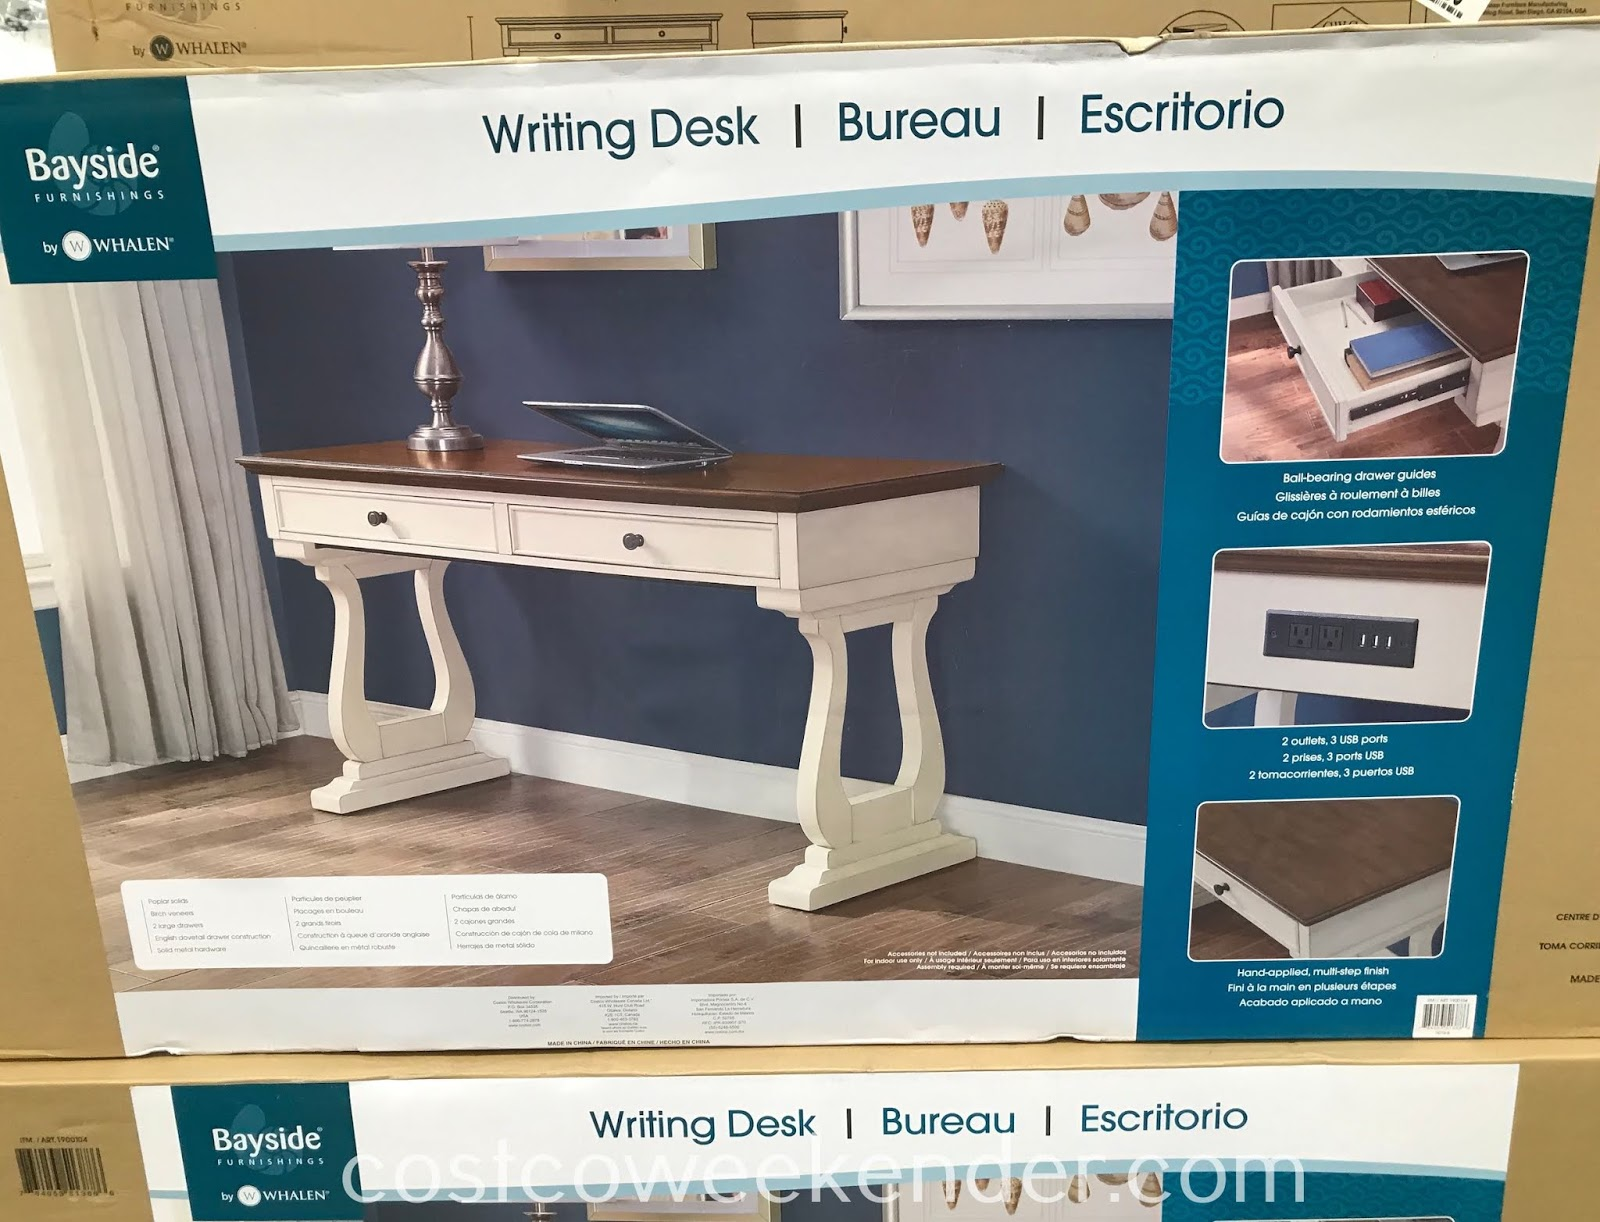 Costco 1900104 - Set up a quick and tidy workstation with the Bayside Furnishings Writing Desk